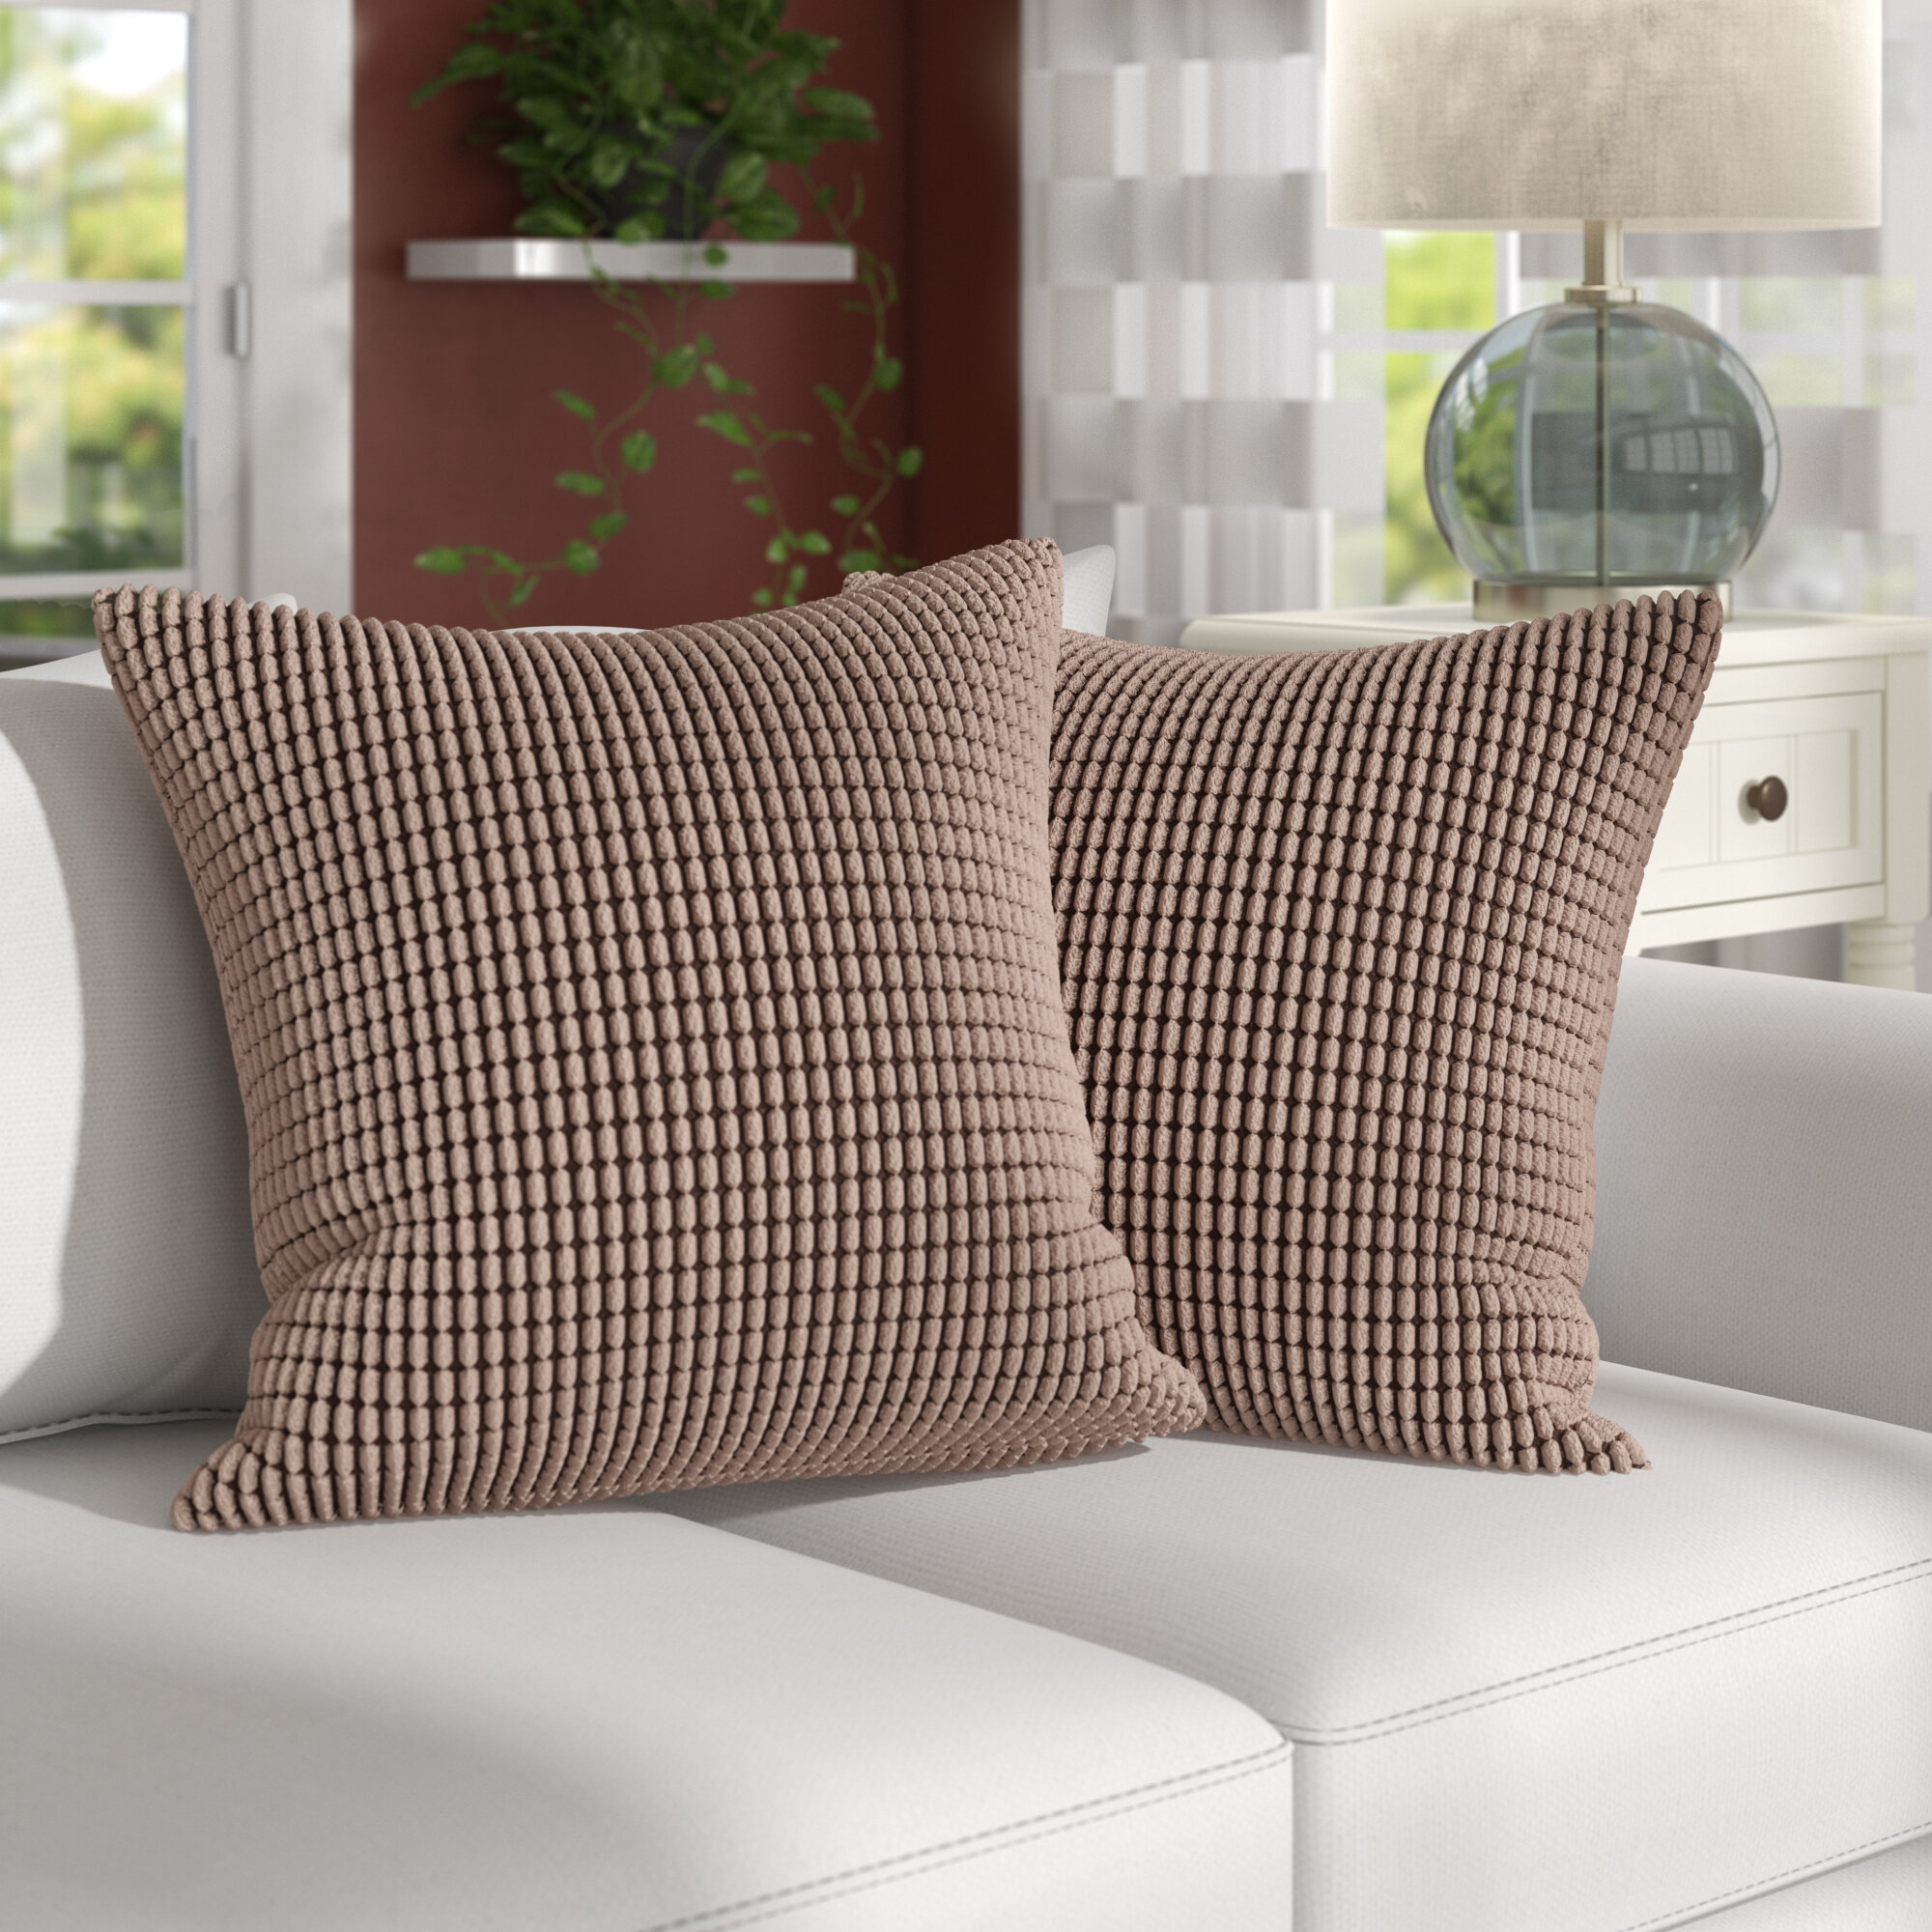 Ebern Designs Miltonvale Square Pillow Cover Reviews Wayfair